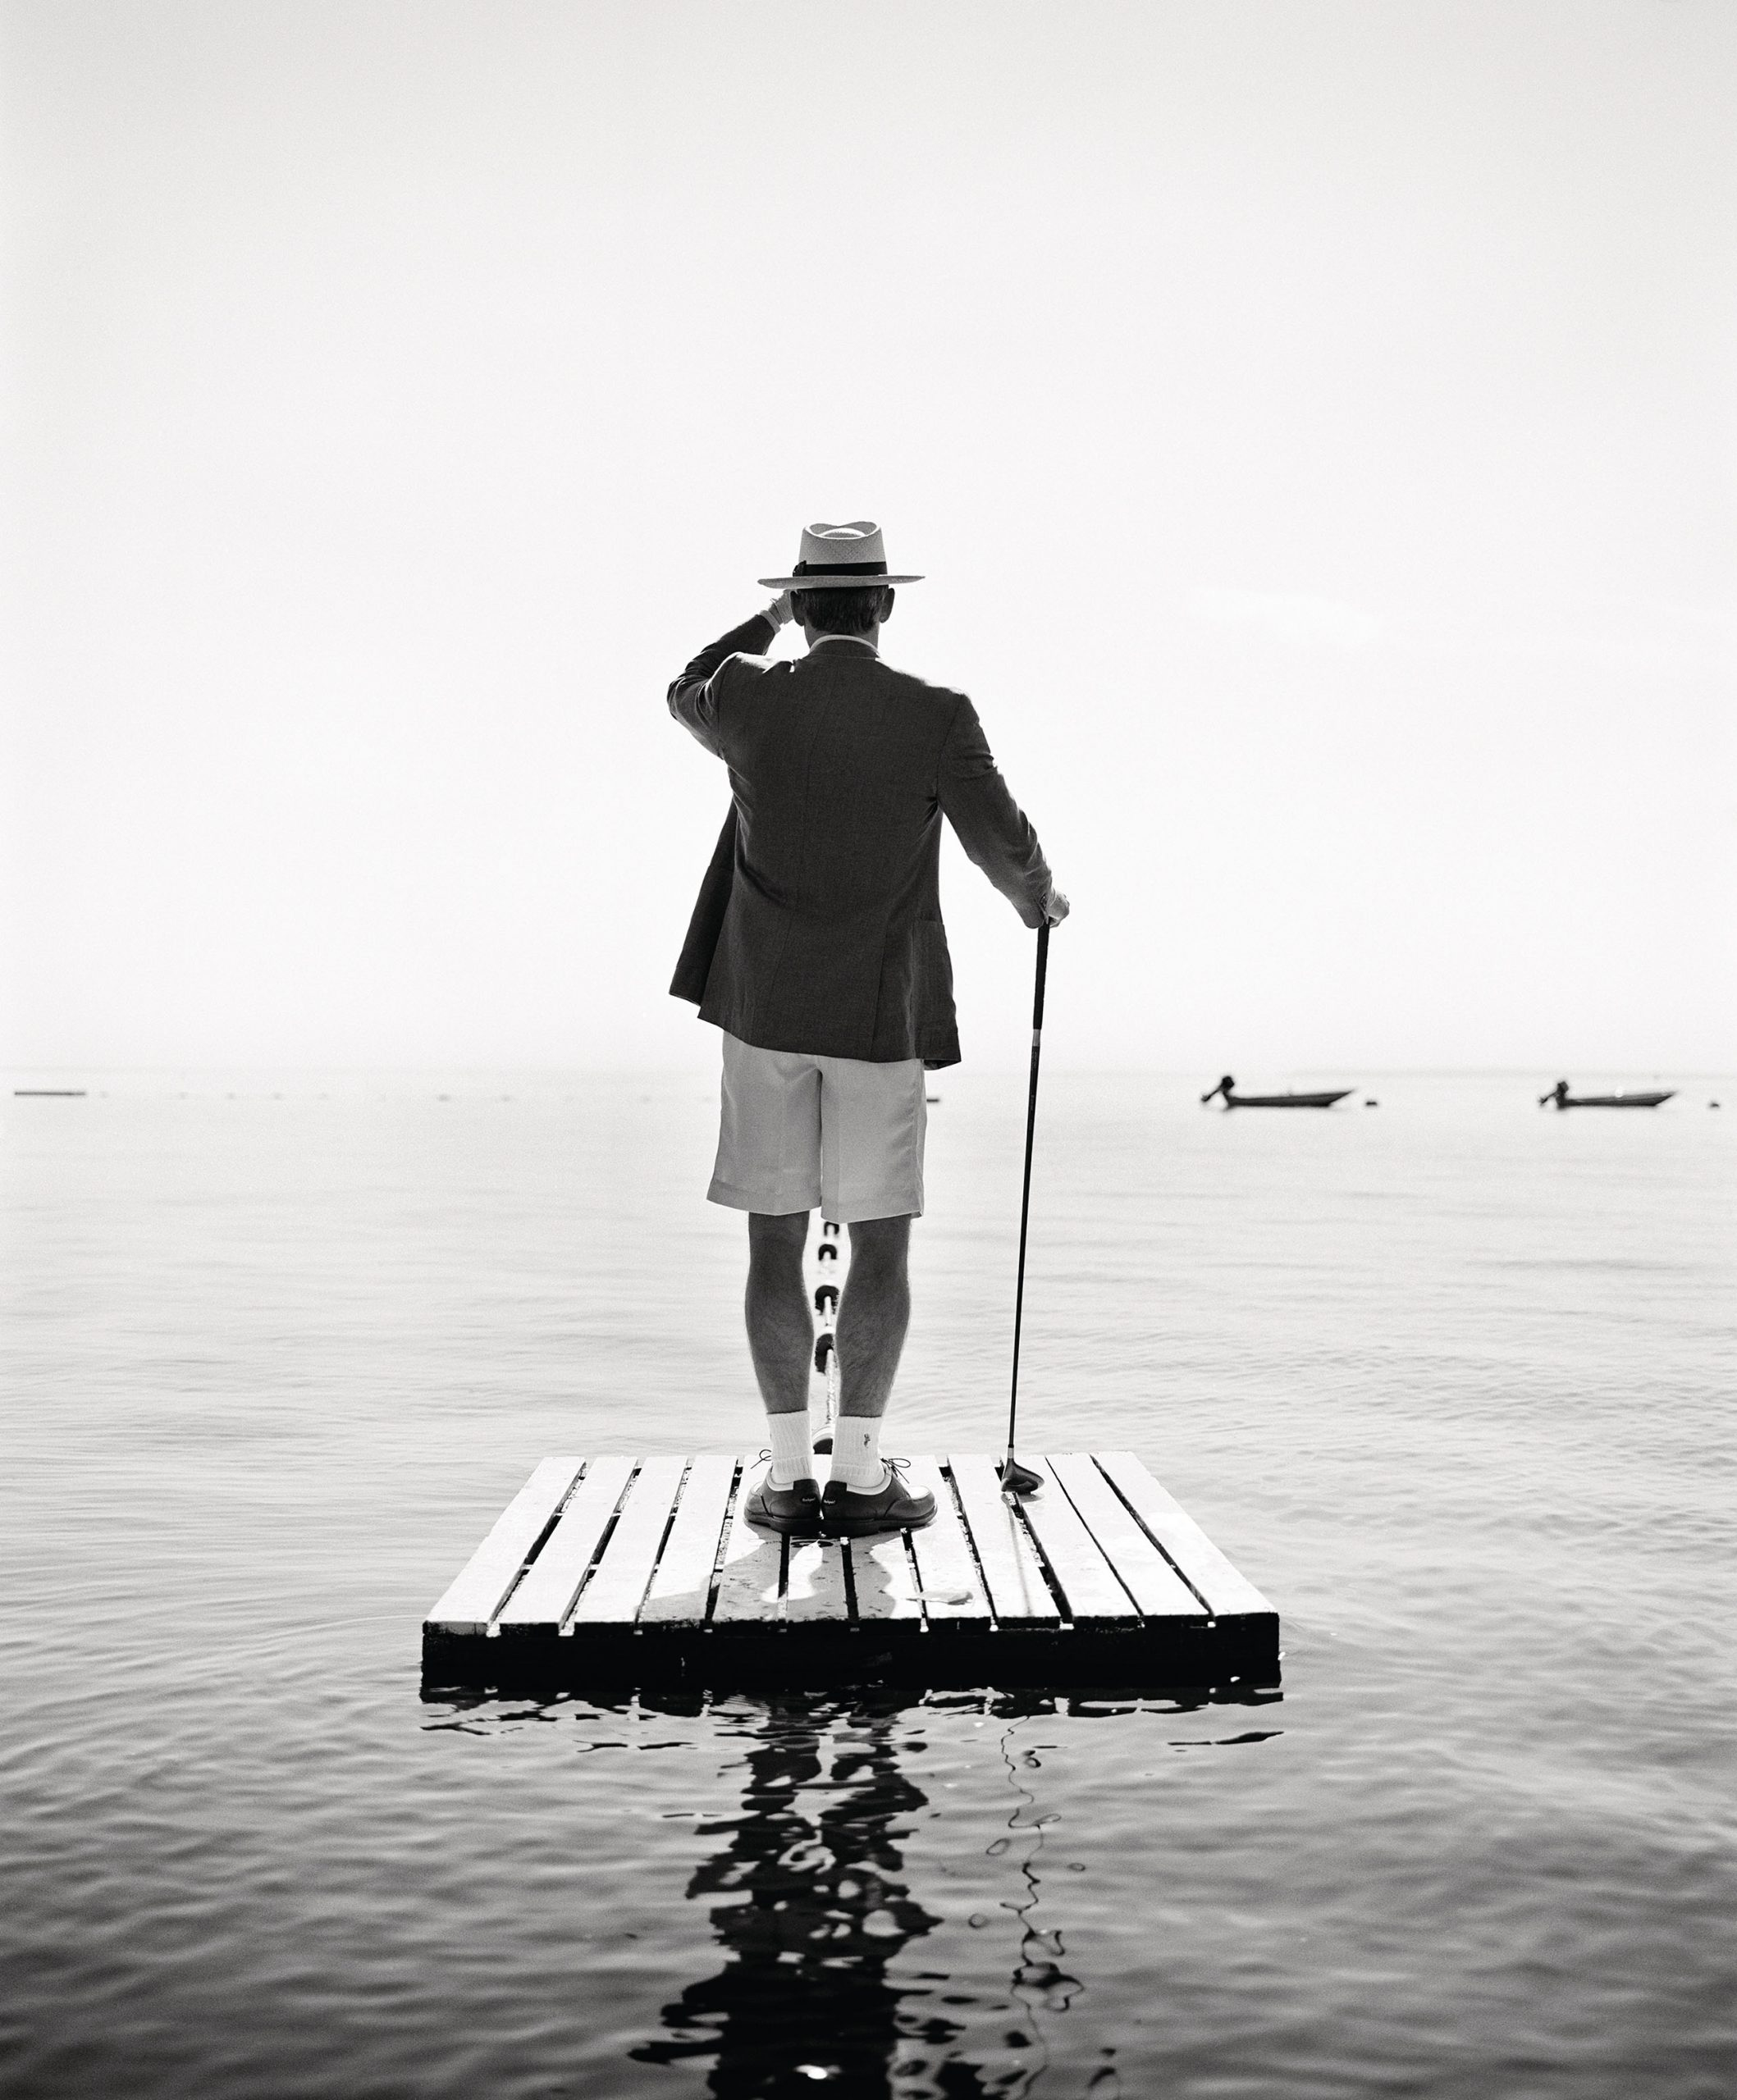 Dodge on dock with golf club, Harrison, New York, 1998